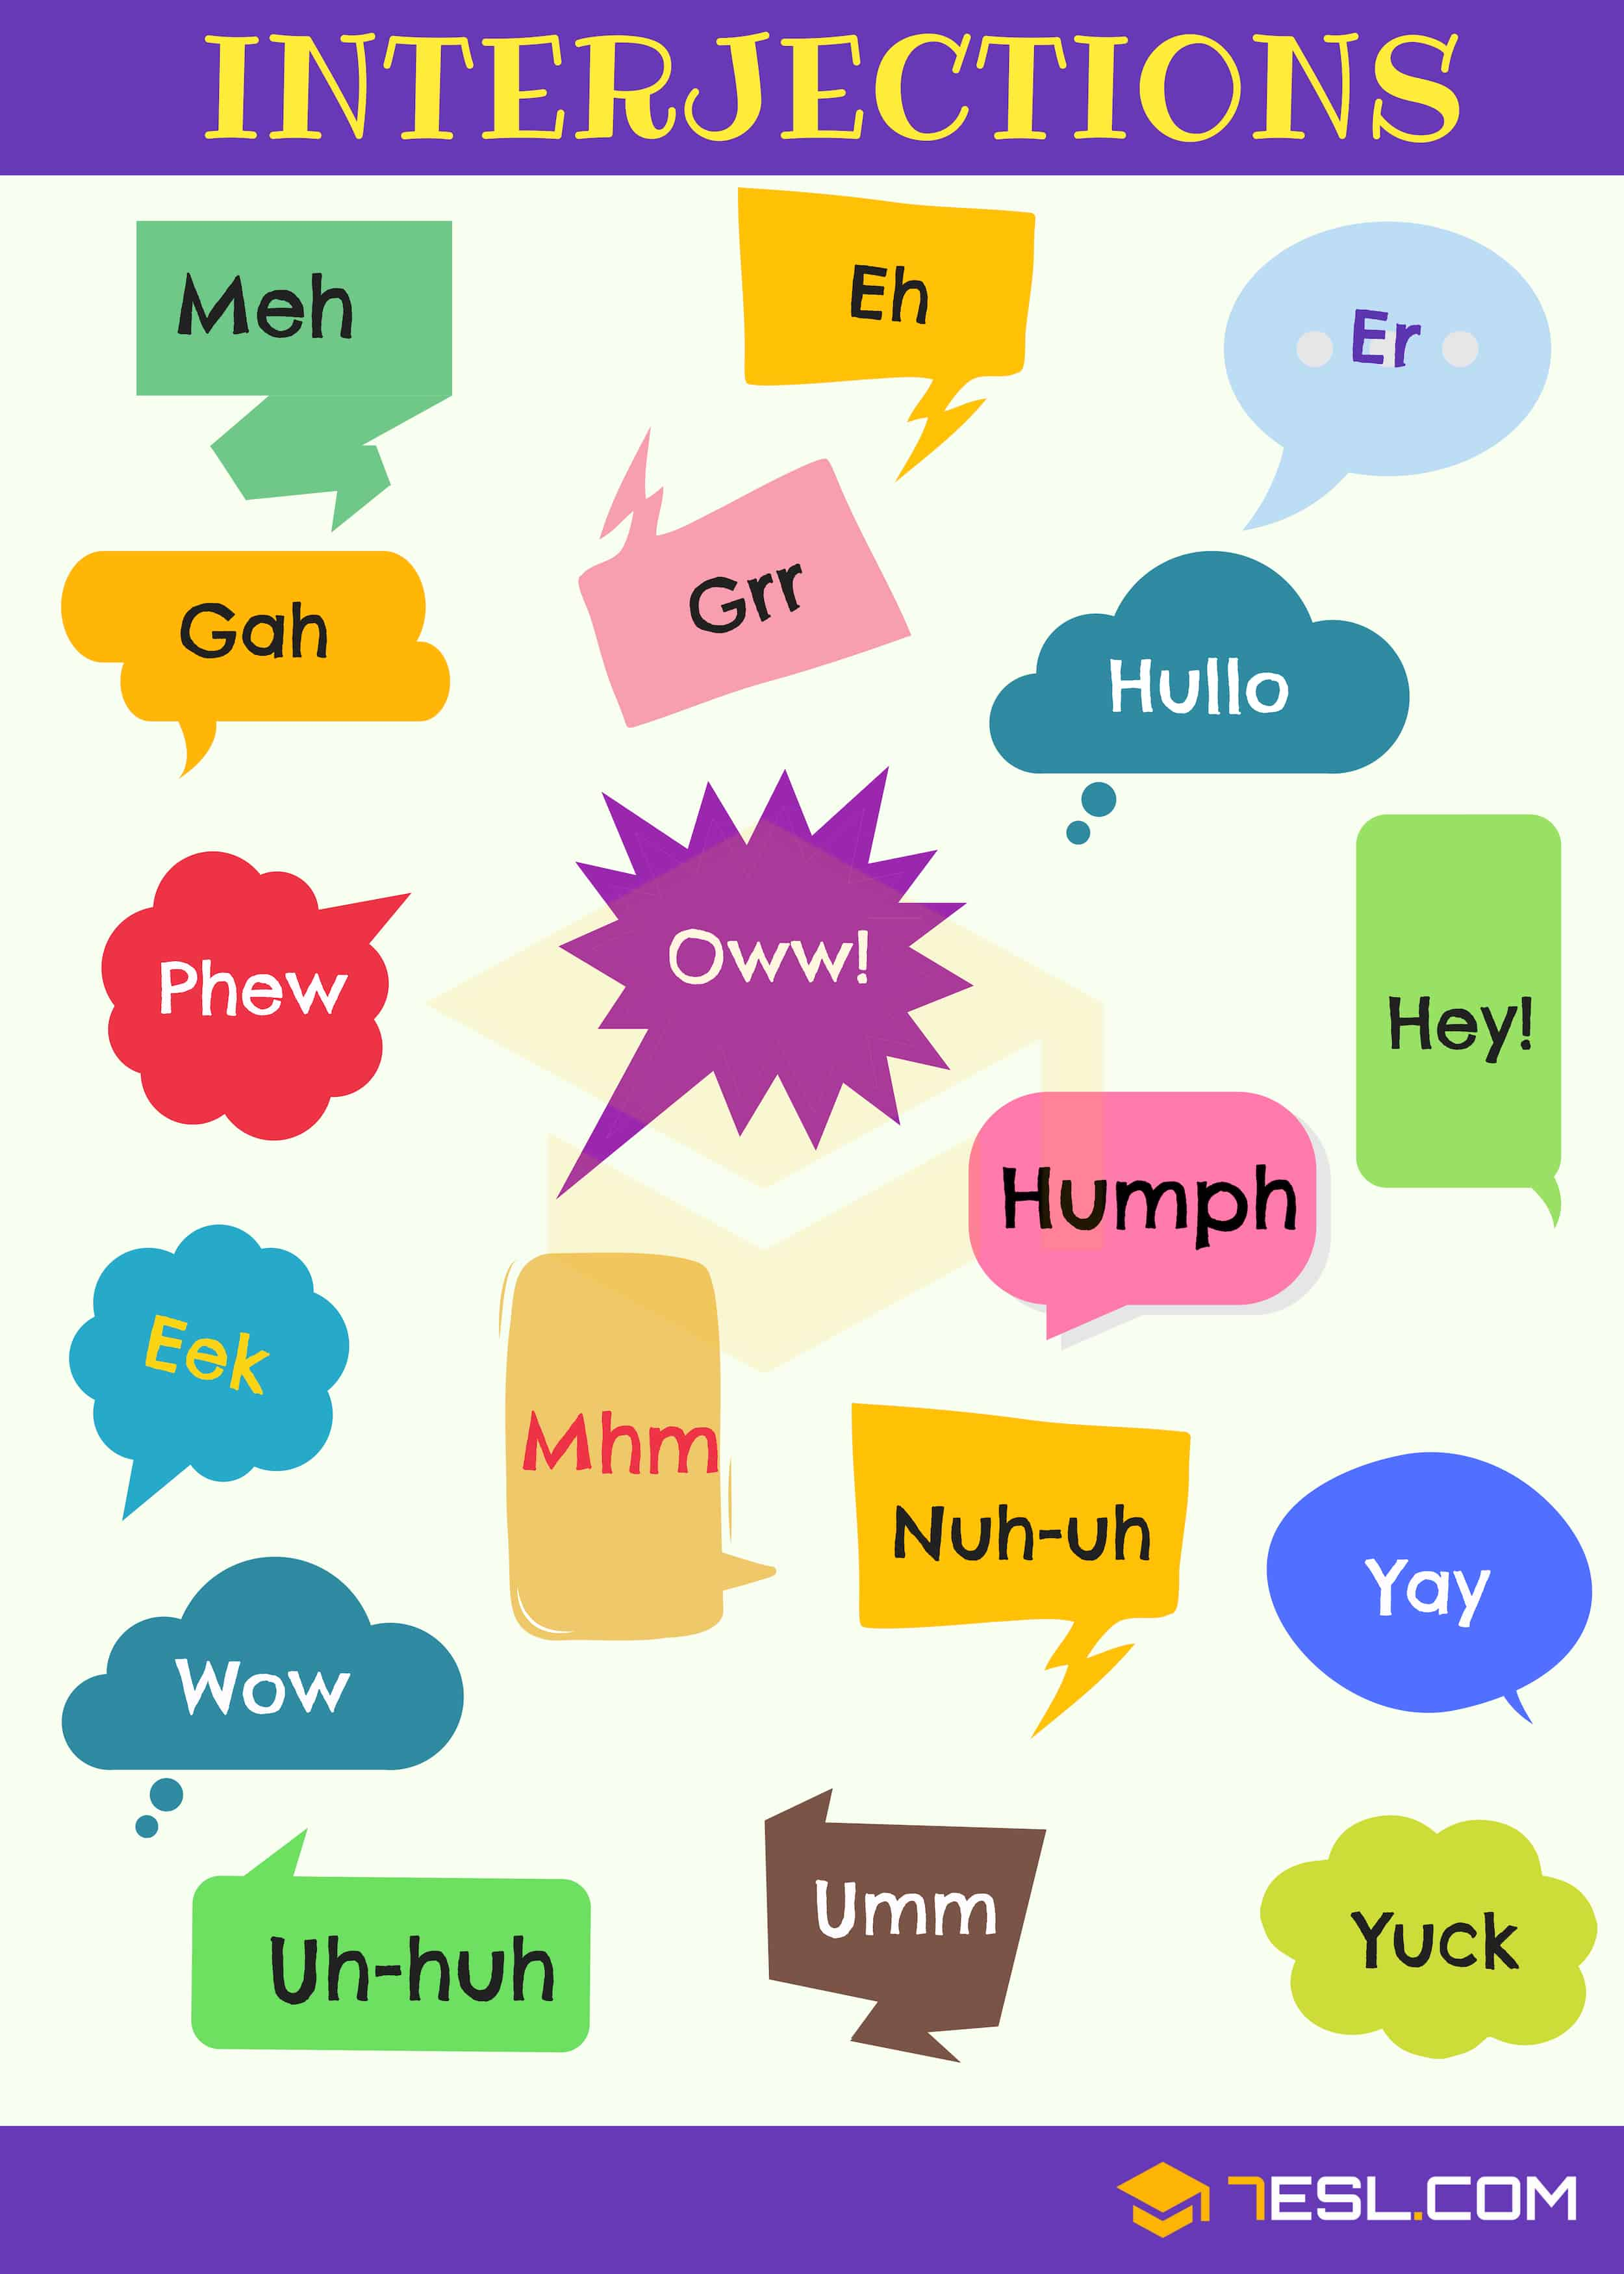 List of 60+ Interjections with Definition & Useful Examples